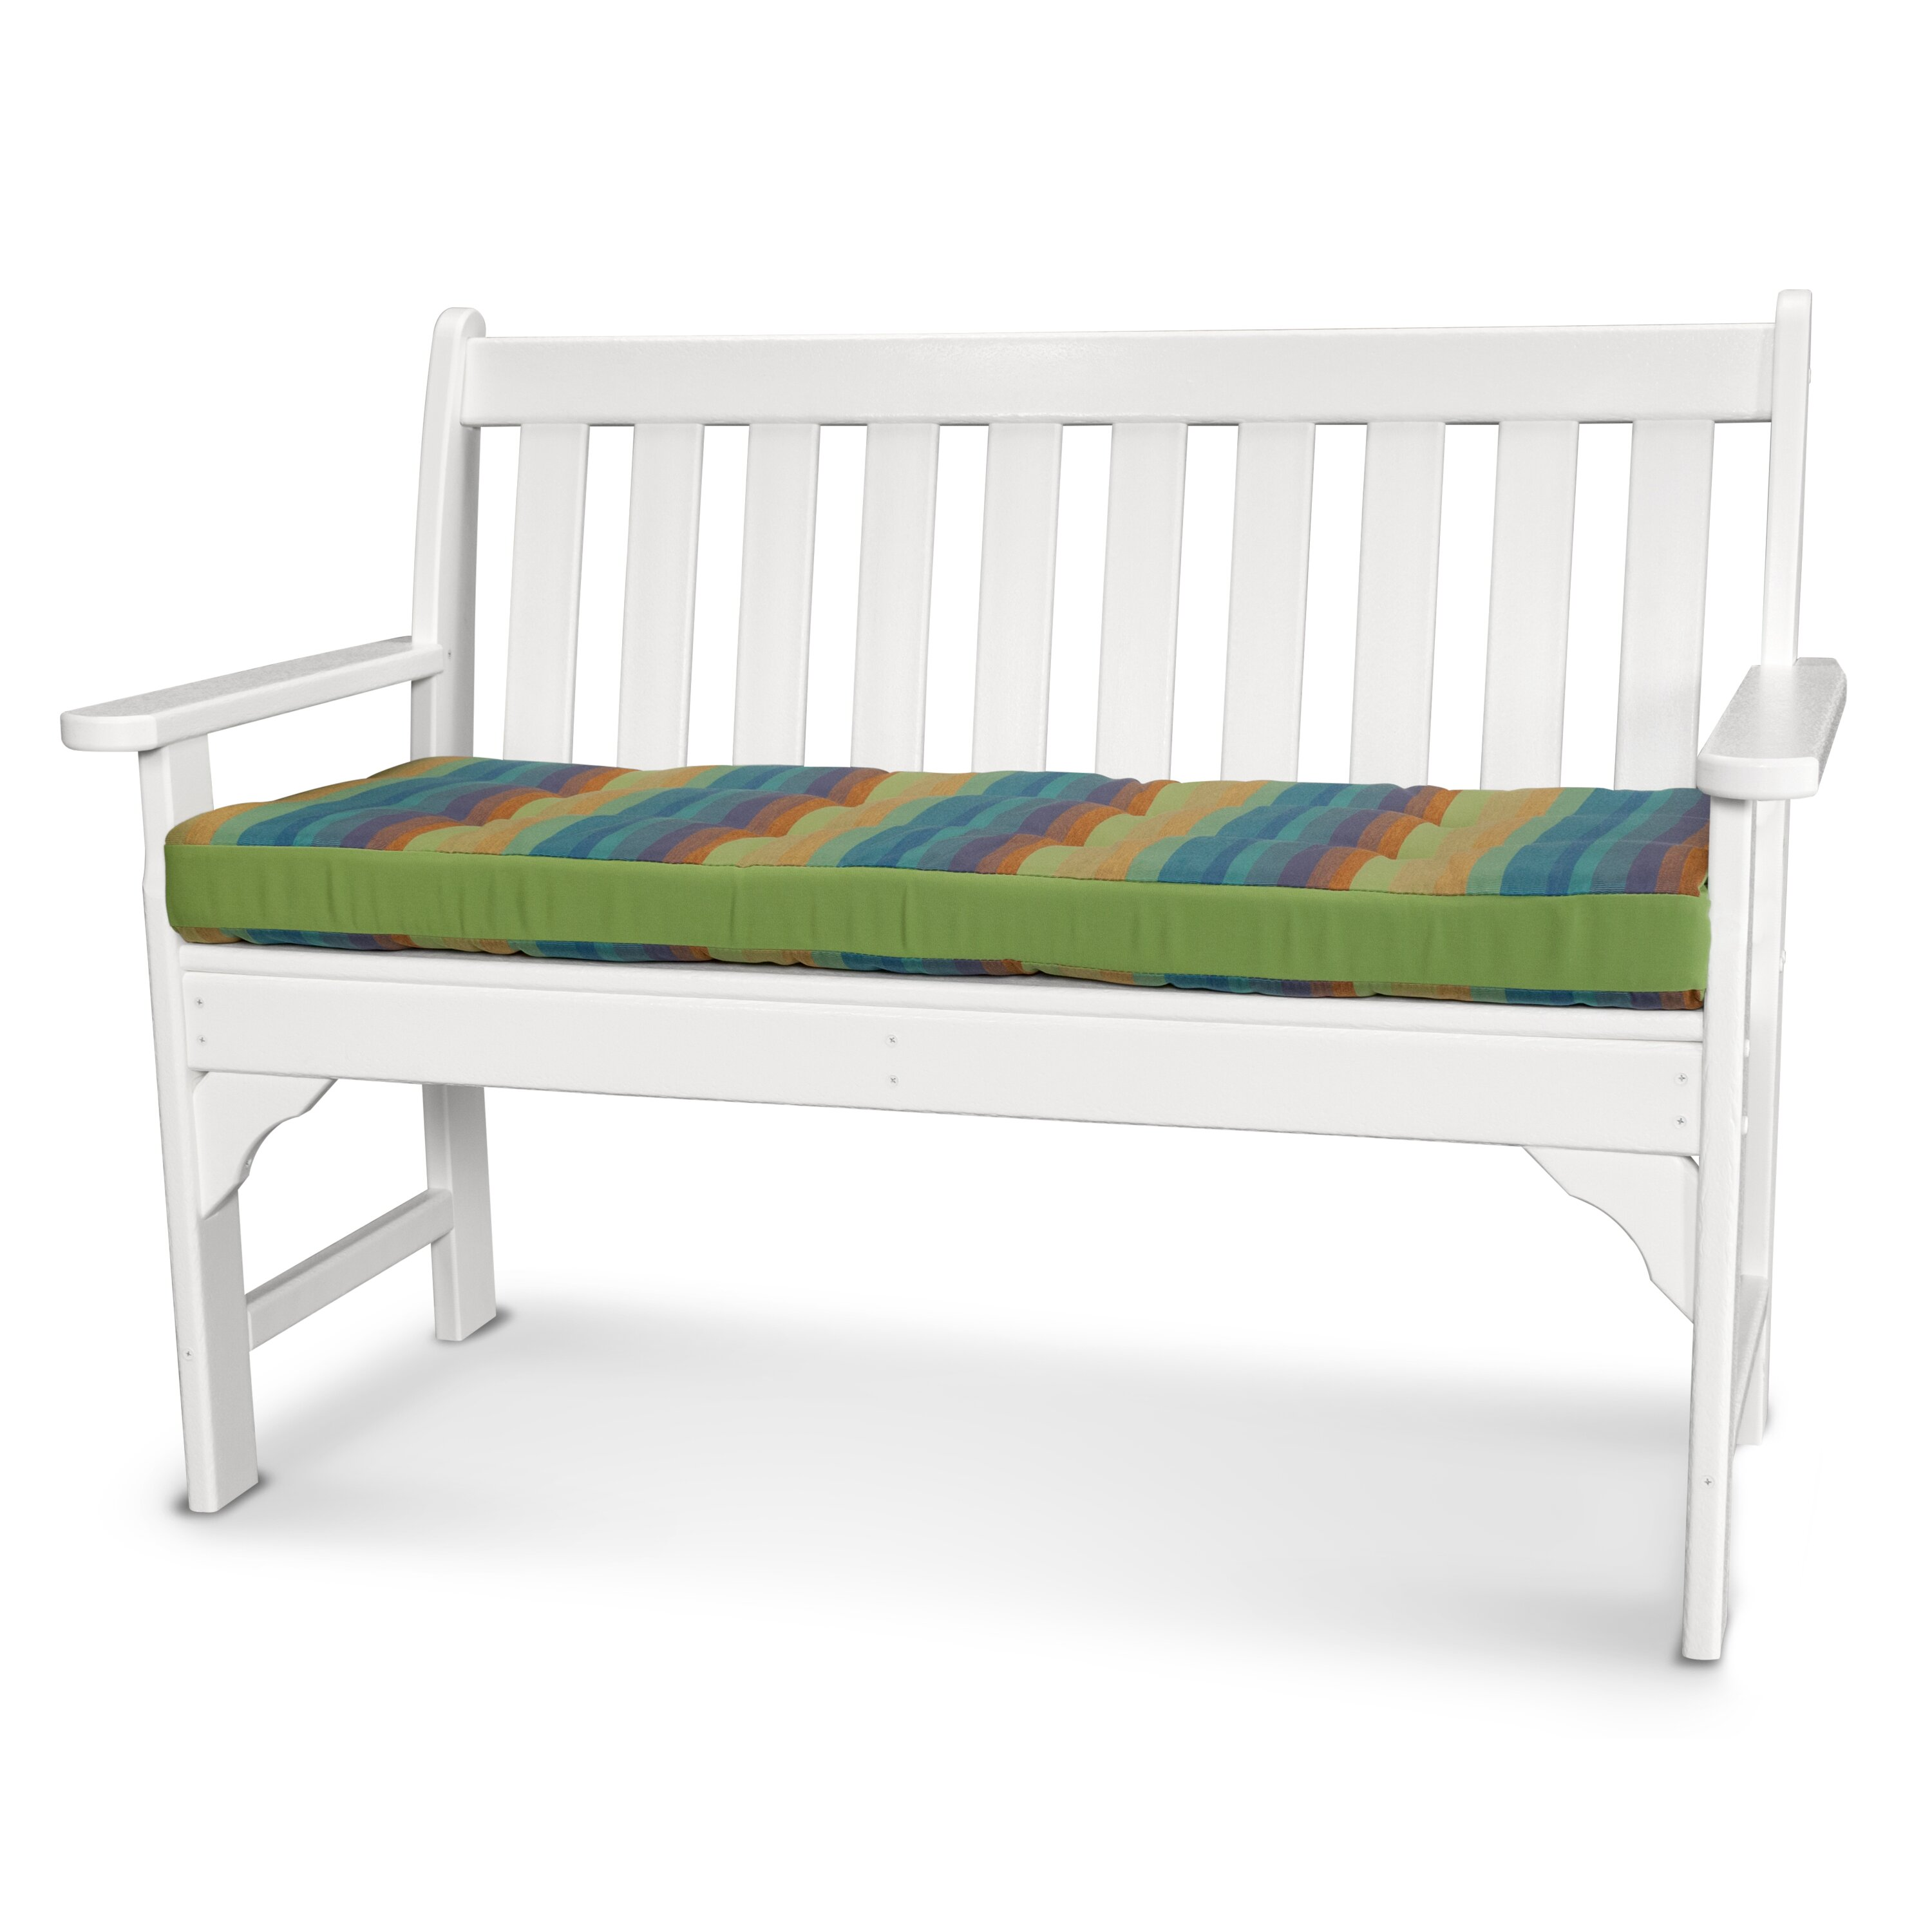 Ateeva Luxe Outdoor Sunbrella Bench Cushion Reviews Wayfair